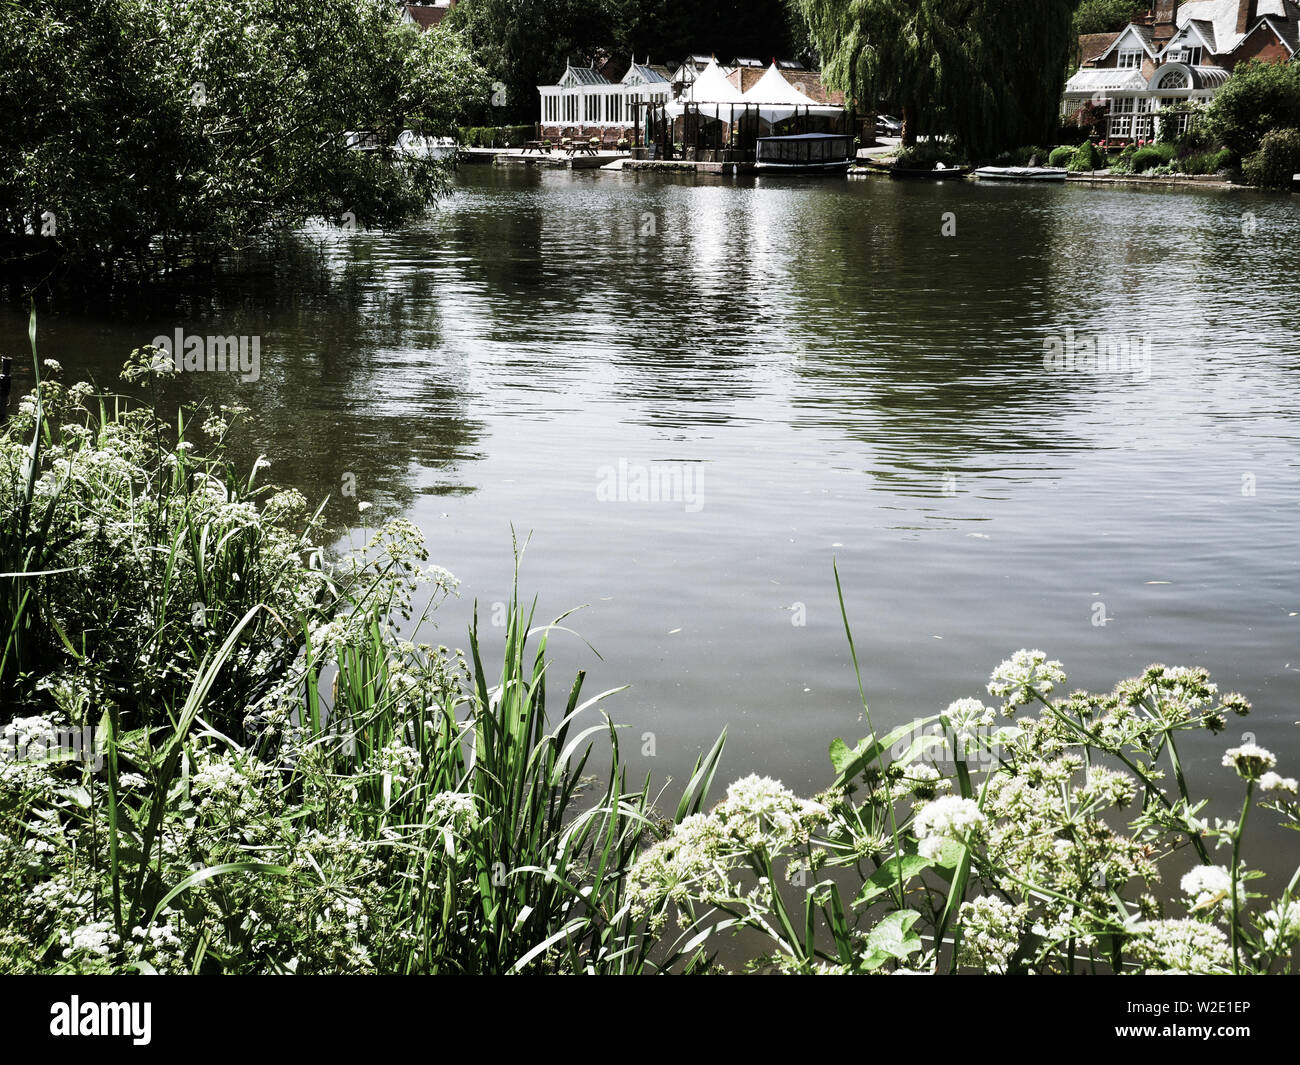 River Thames Landscape, at Ferry Lane, on The Ridgeway Path, South Stoke, Oxfordshire, England, UK, GB. Stock Photo